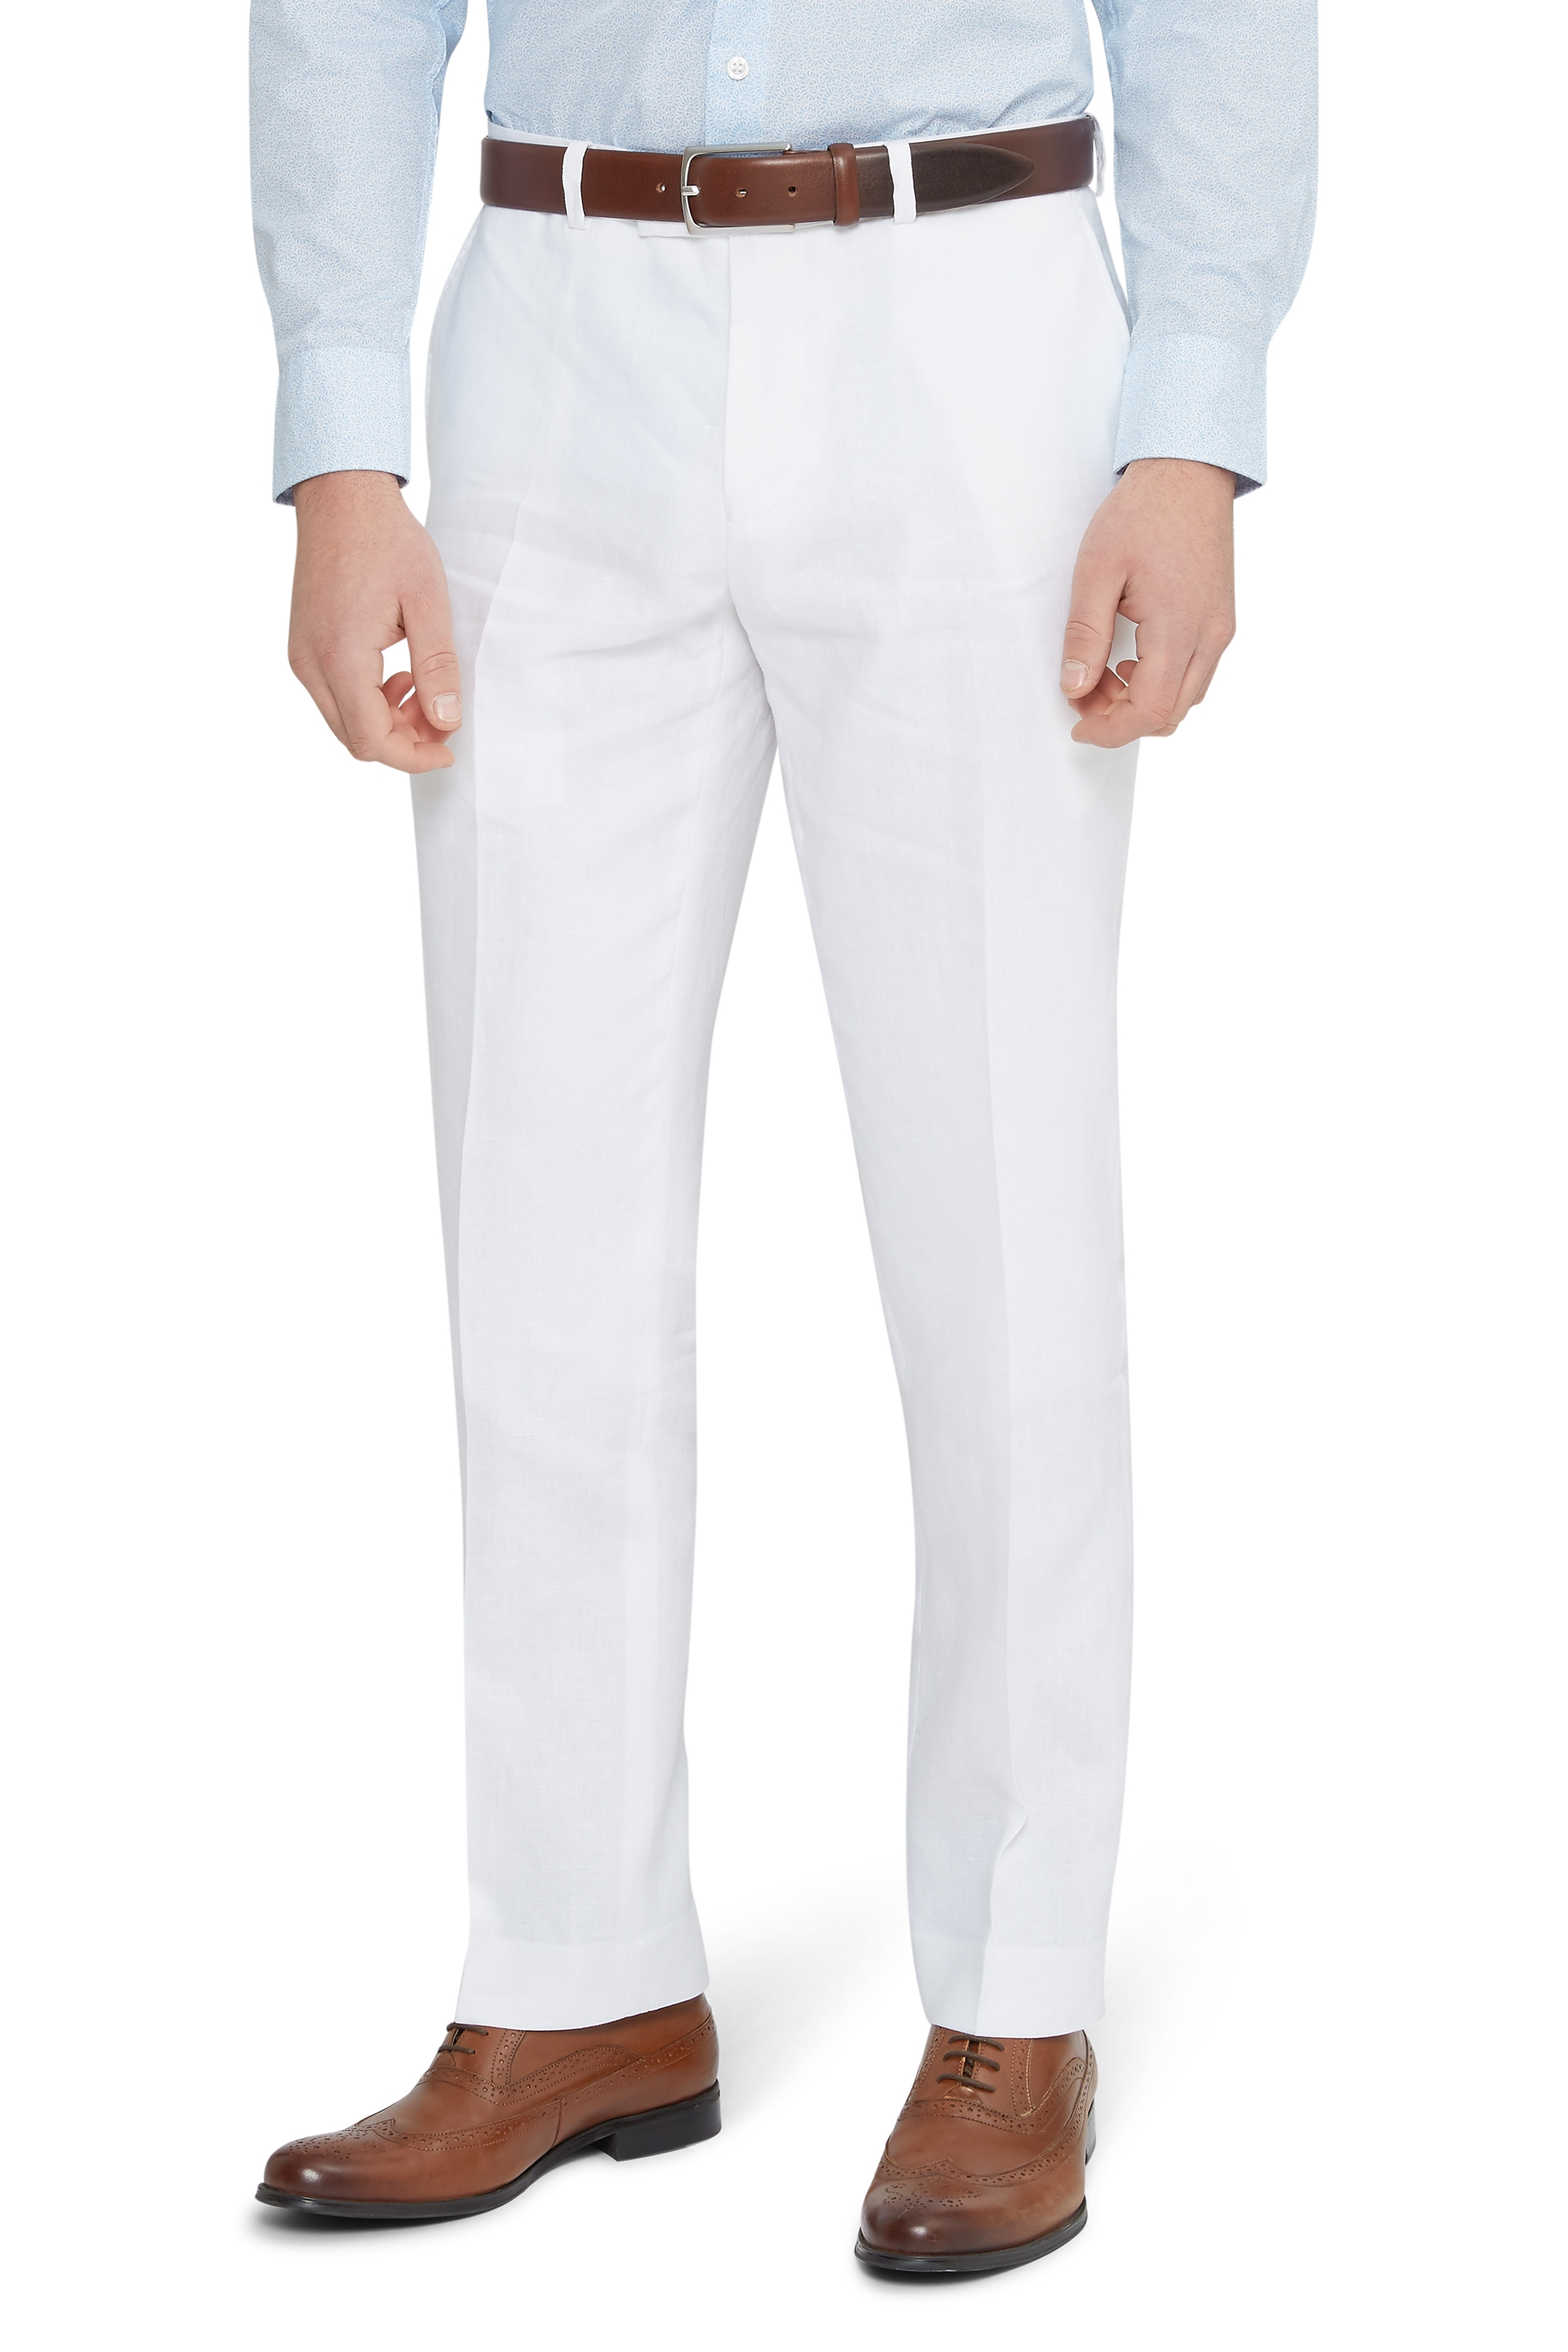 Moss 1851 Mens White Suit Trousers Tailored Fit Linen Formal Pants | EBay